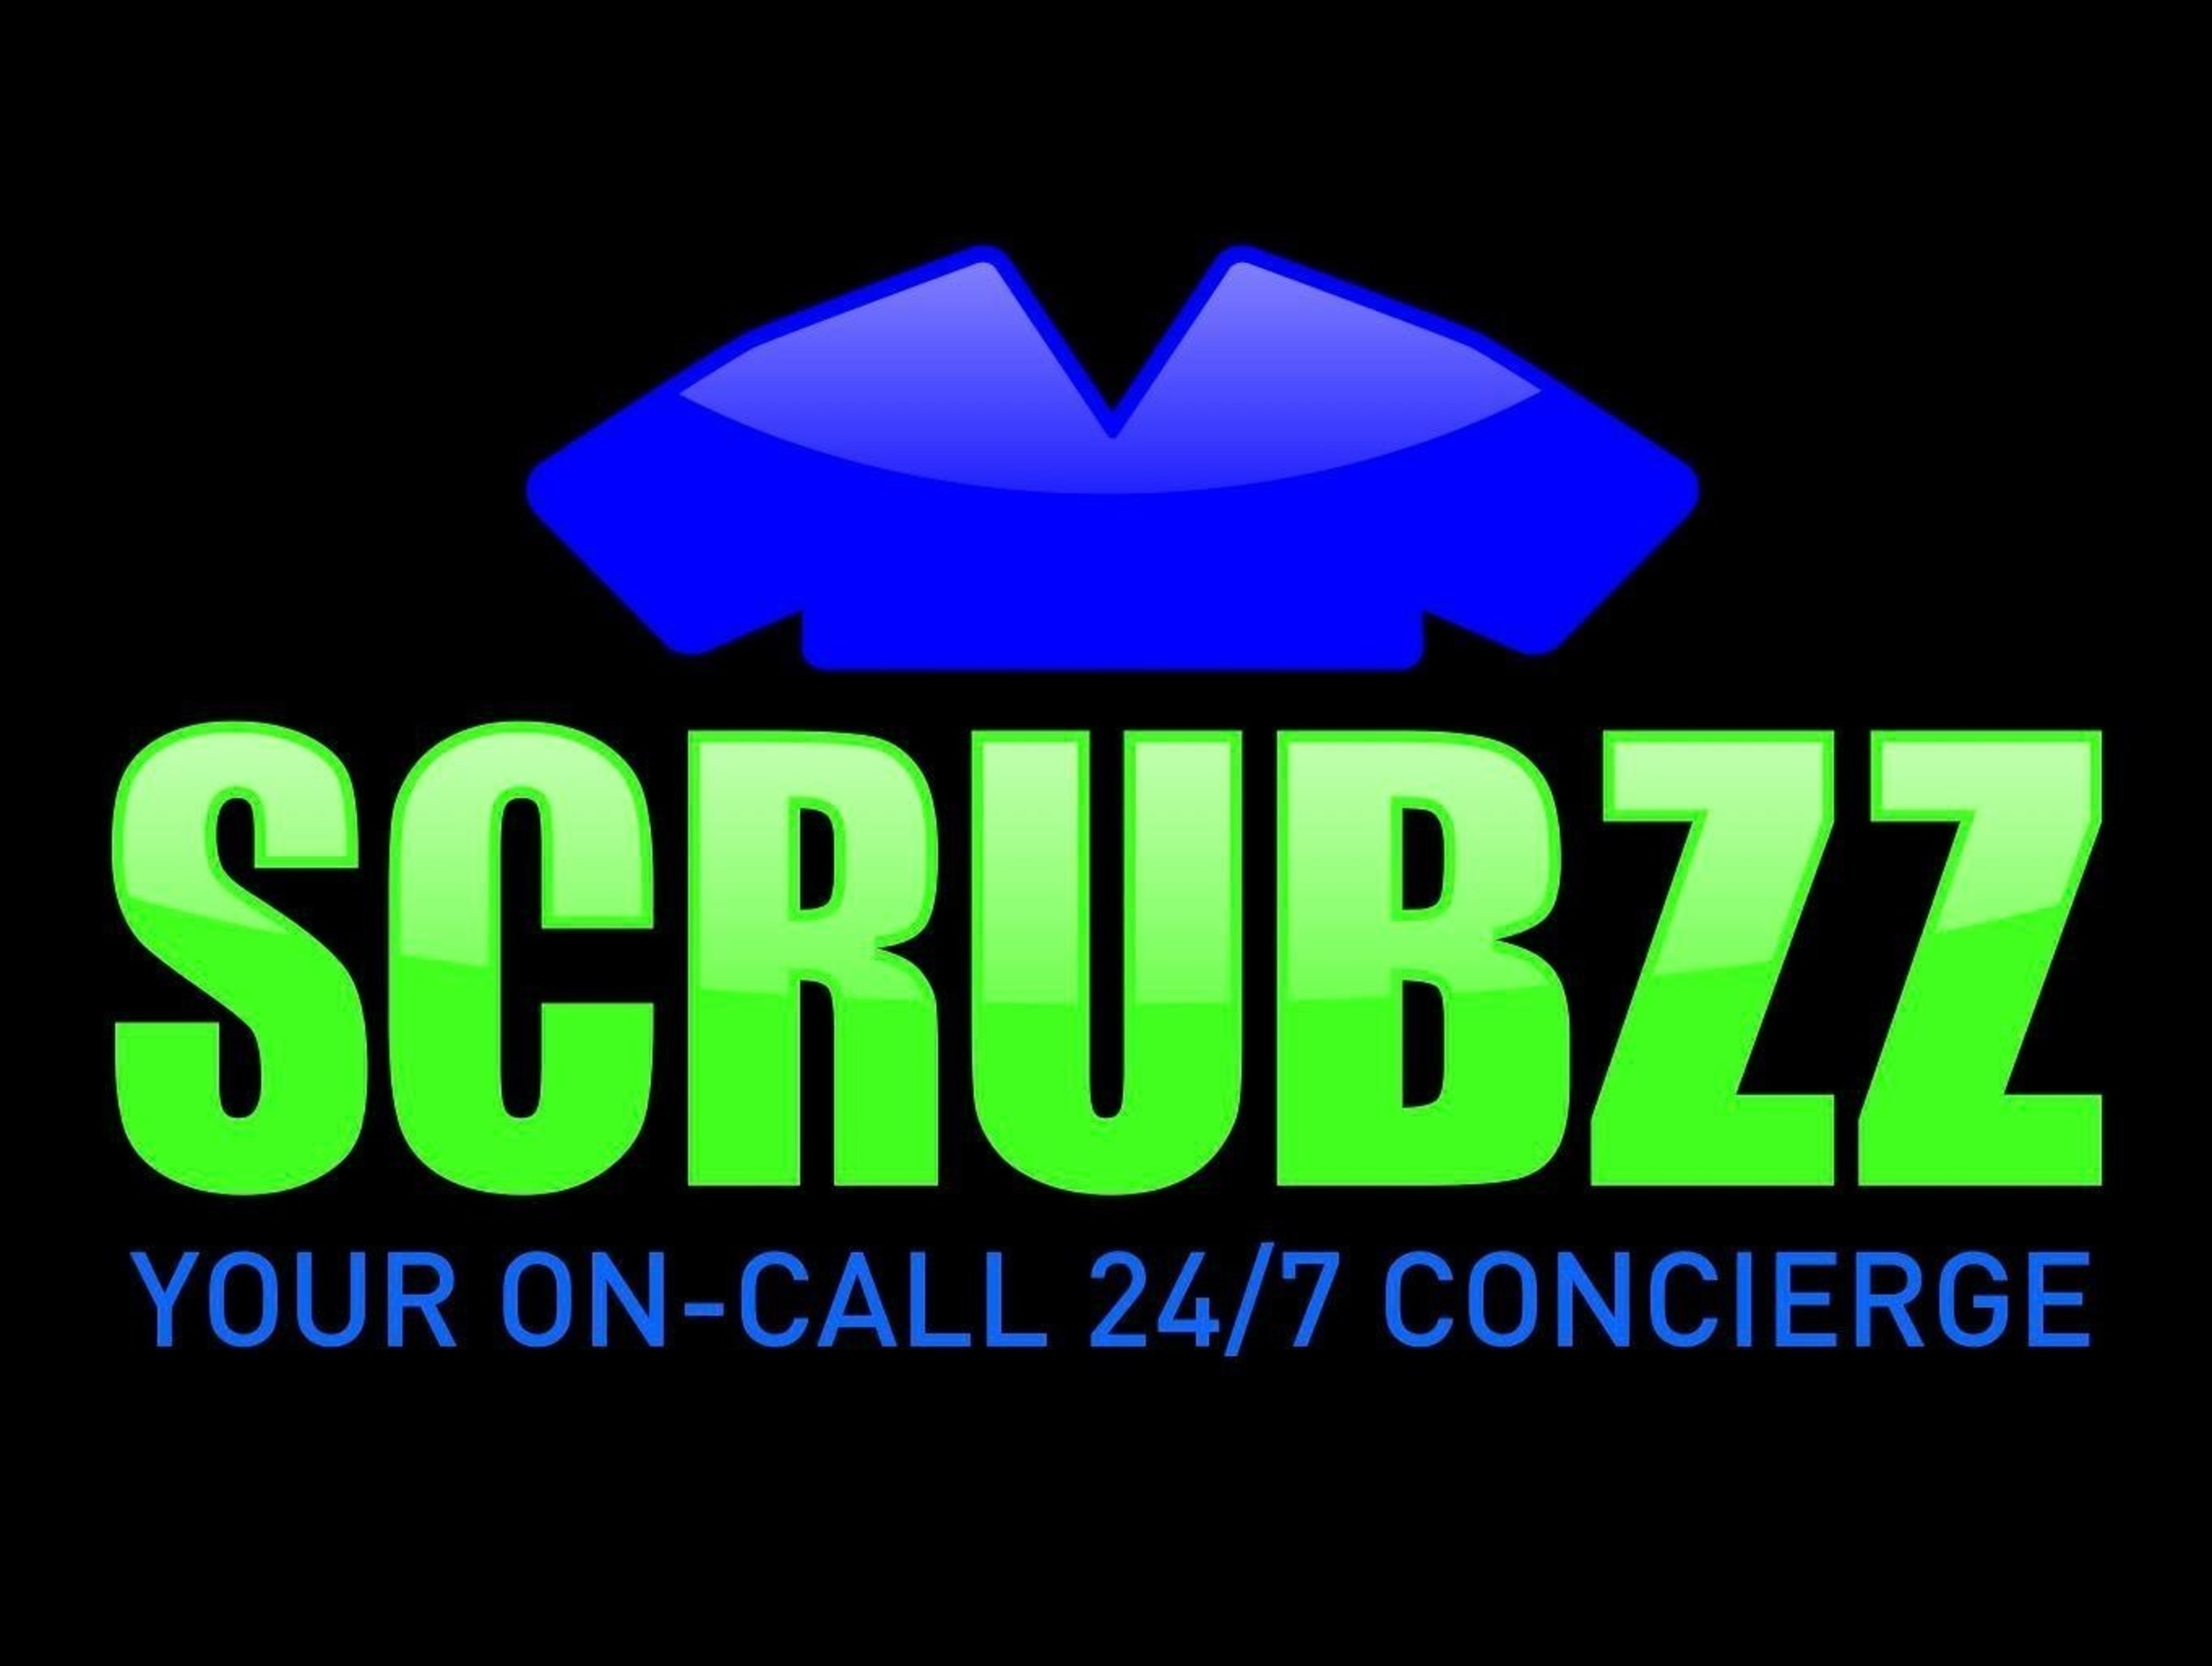 Scrubzz, Chicago's In-Home Concierge Service, Debuts Laundry Service With Free Pickup/Drop-Off and